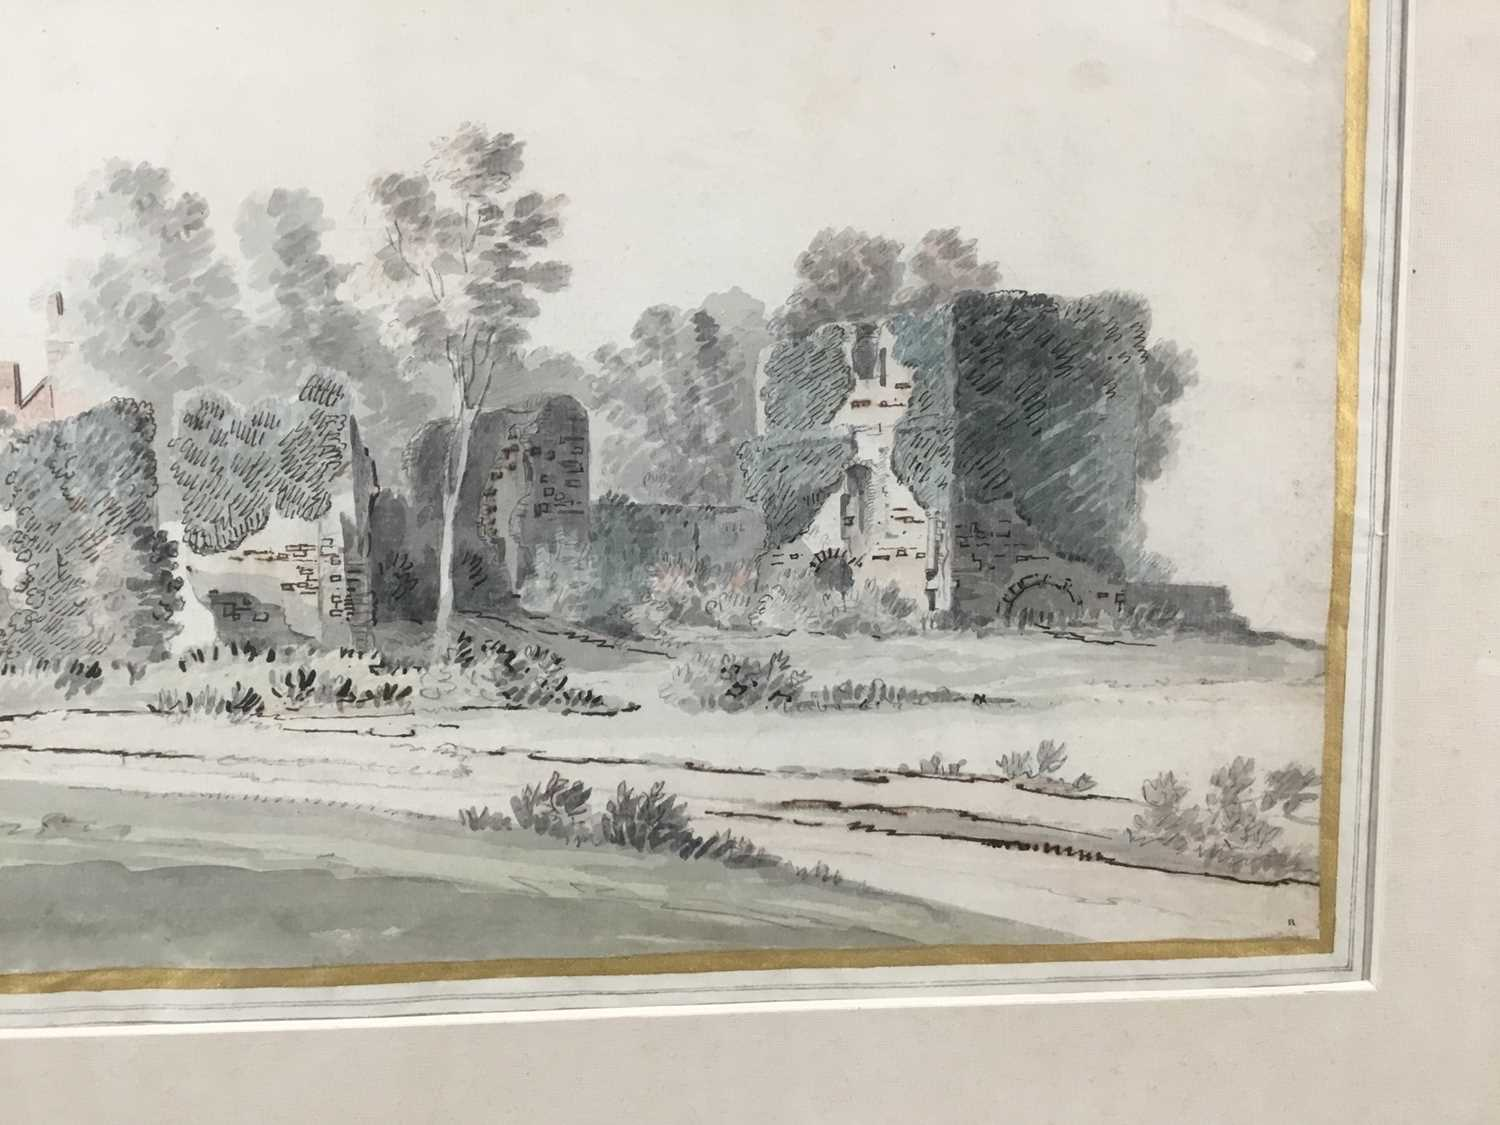 English School, early 18th century, monochrome pen, ink and watercolour - Castle Ruins, with mark fo - Image 7 of 8